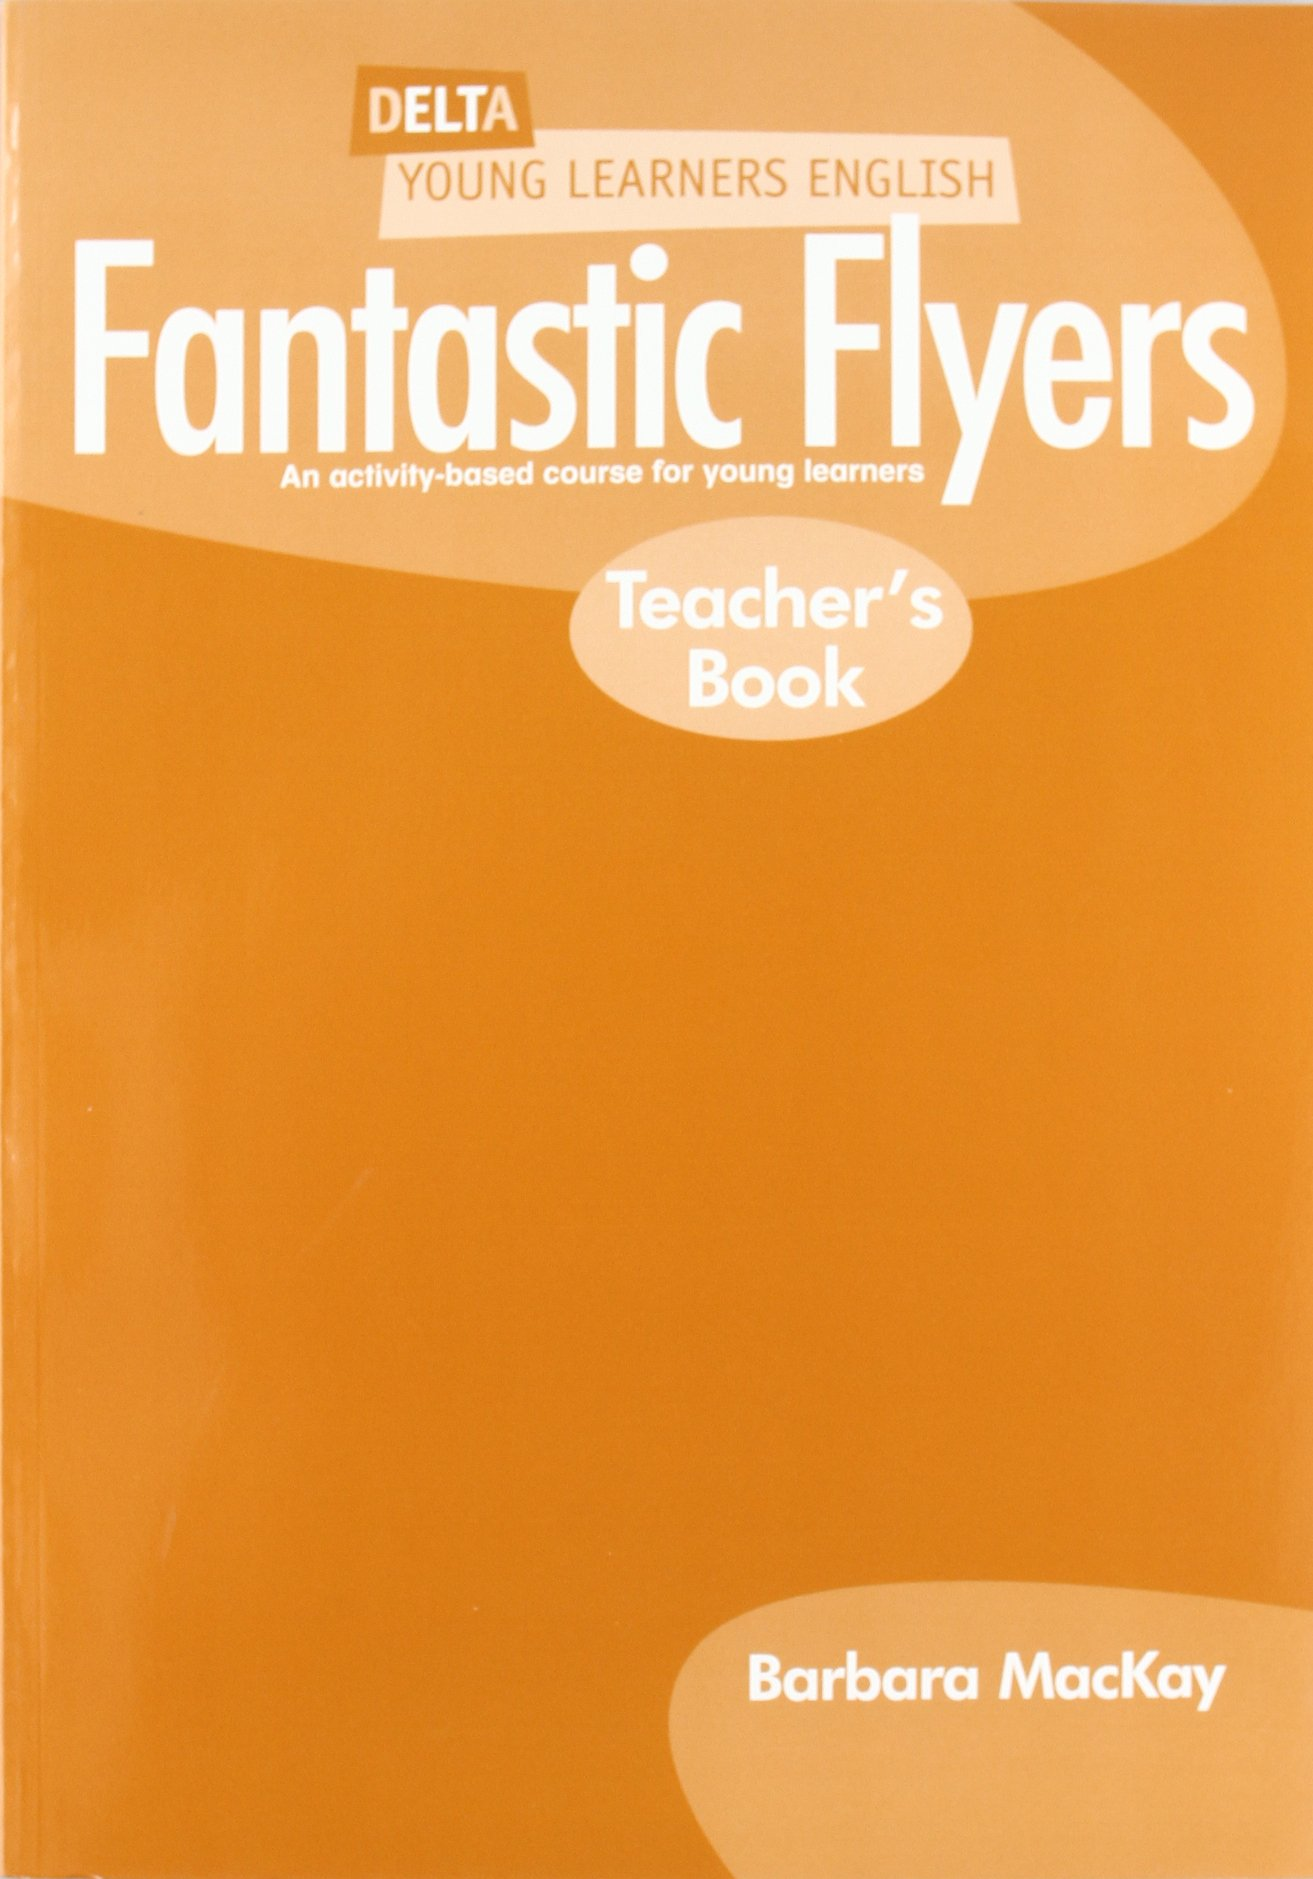 DELTA FANTASTIC FLYERS Teacher's Book